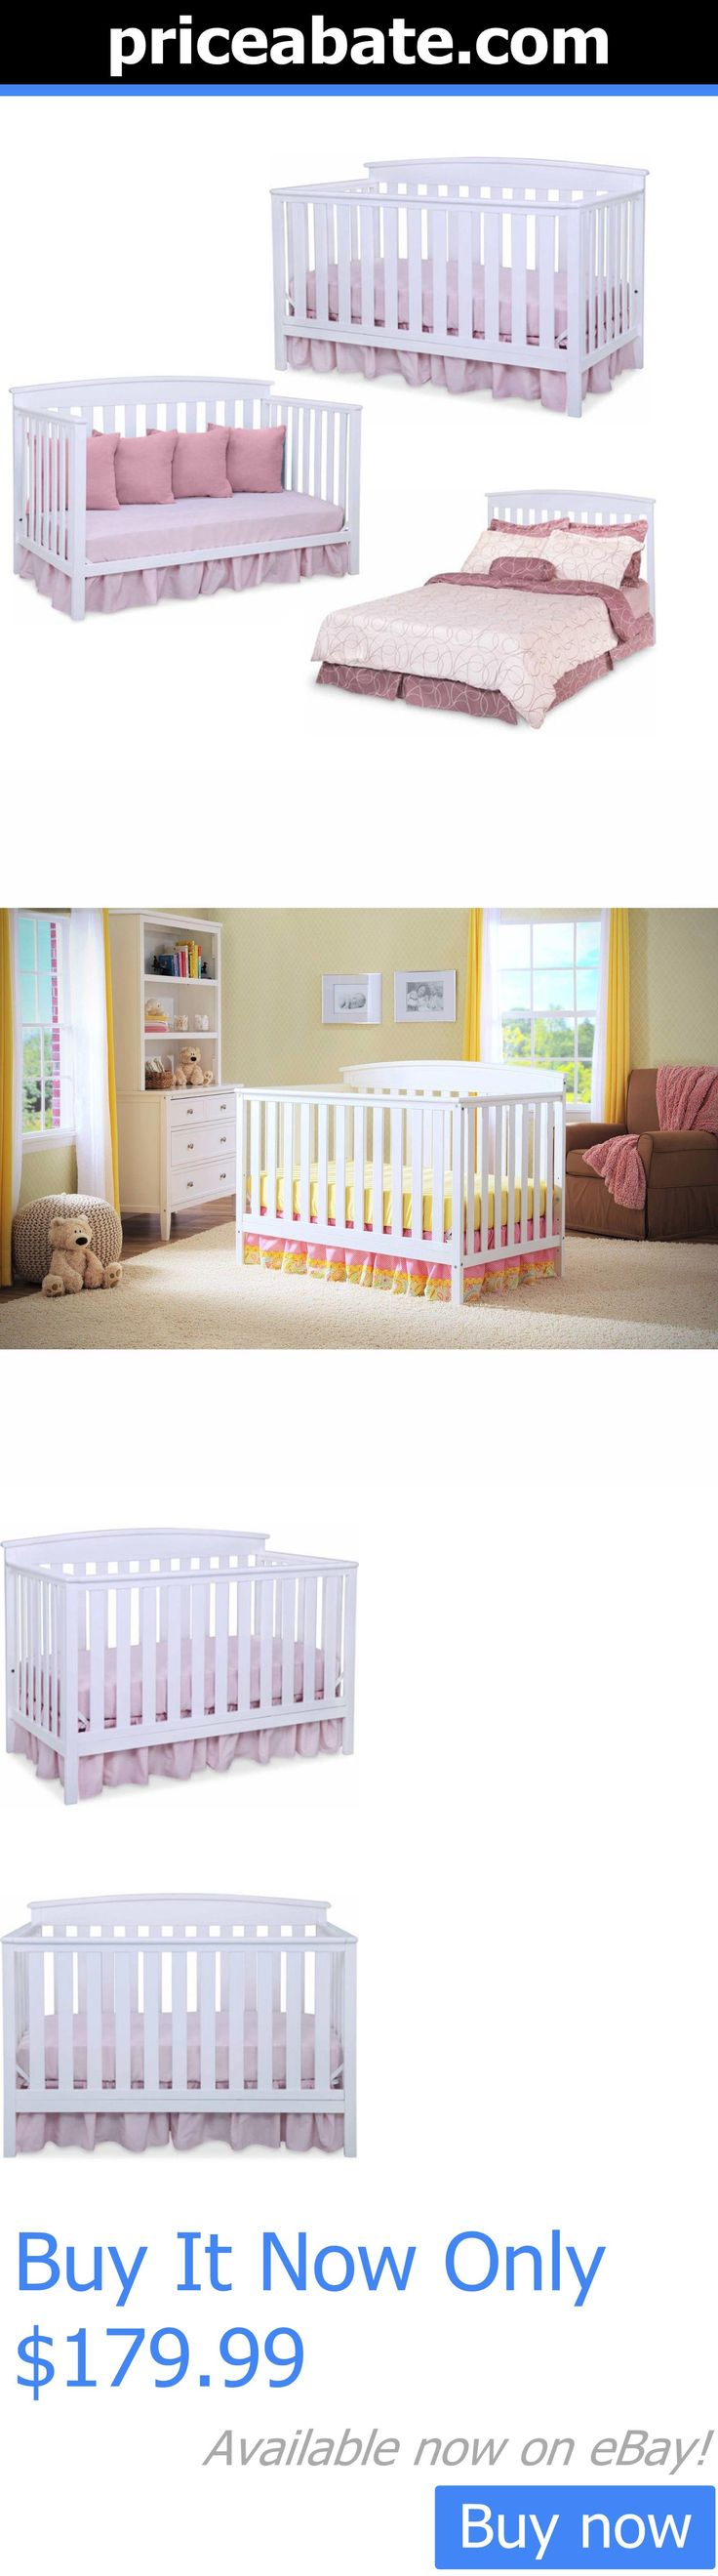 Best baby crib mattress 2013 - The 25 Best Ideas About Baby Crib Mattress On Pinterest Toddler Bed Mattress Diy Front Porch Ideas And Crib Mattress